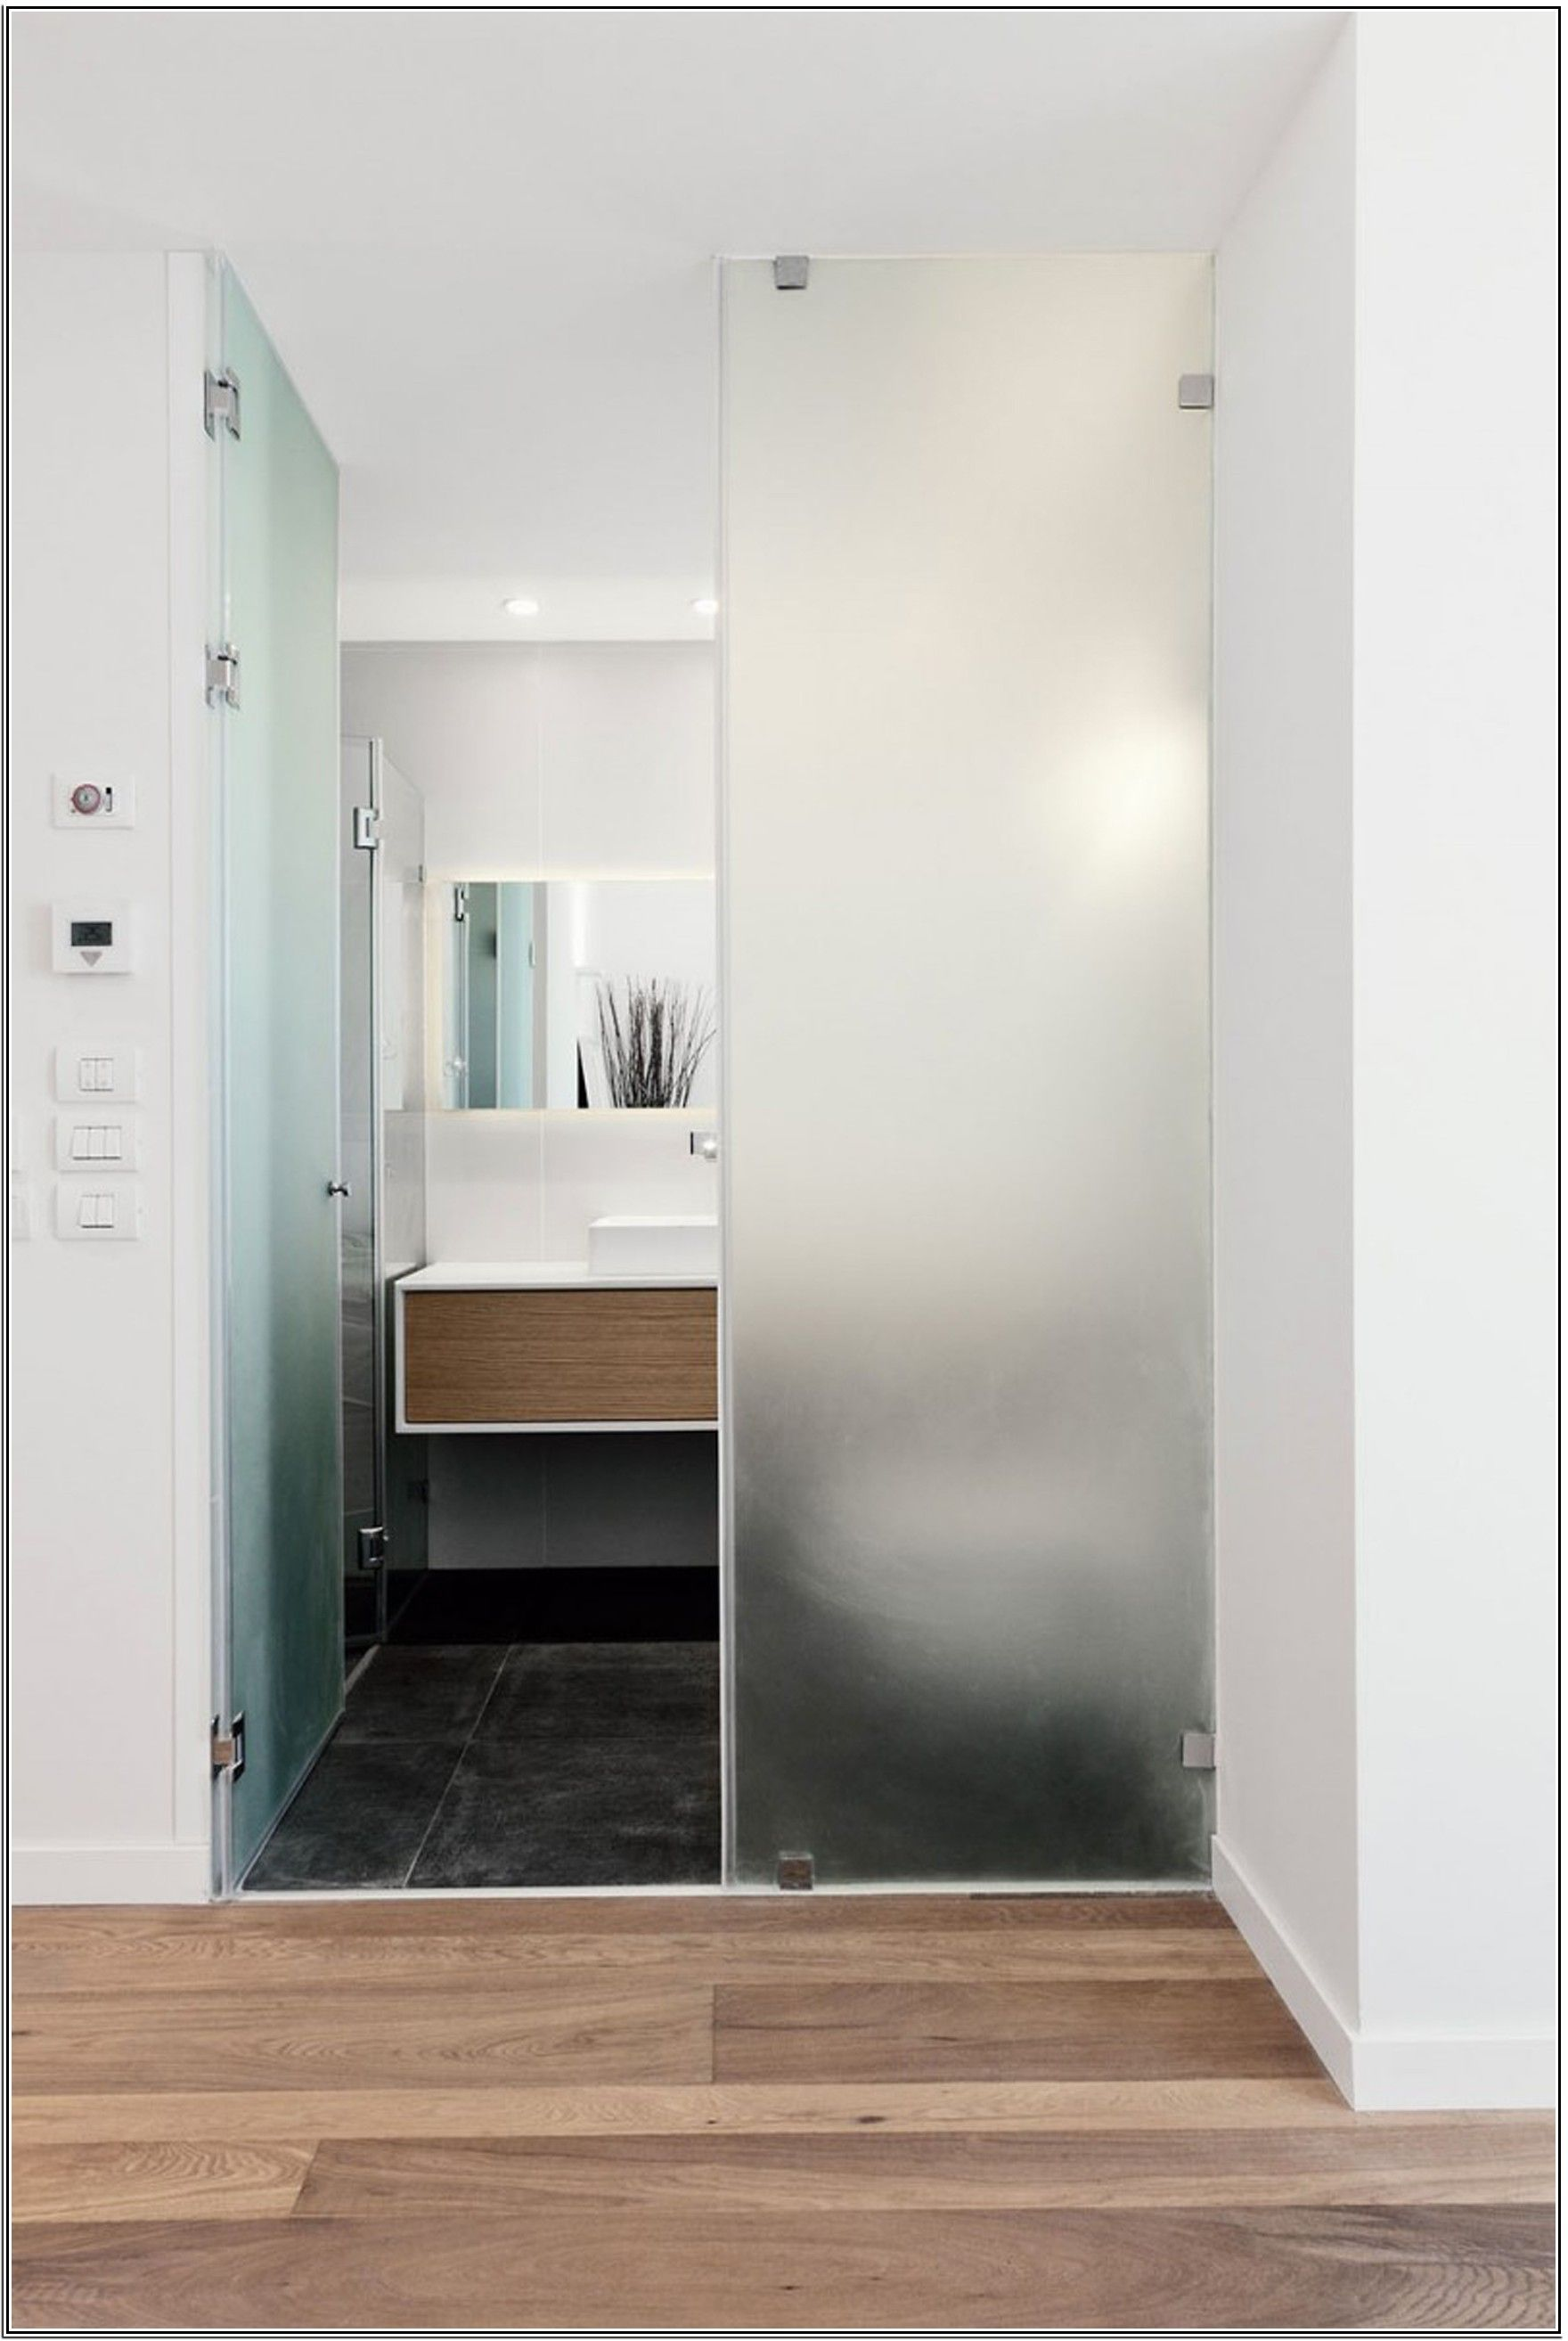 Glass Door Design Glass Bathroom Door With Frosted Glass Door Designs And  Black Tile Bathroom Floor